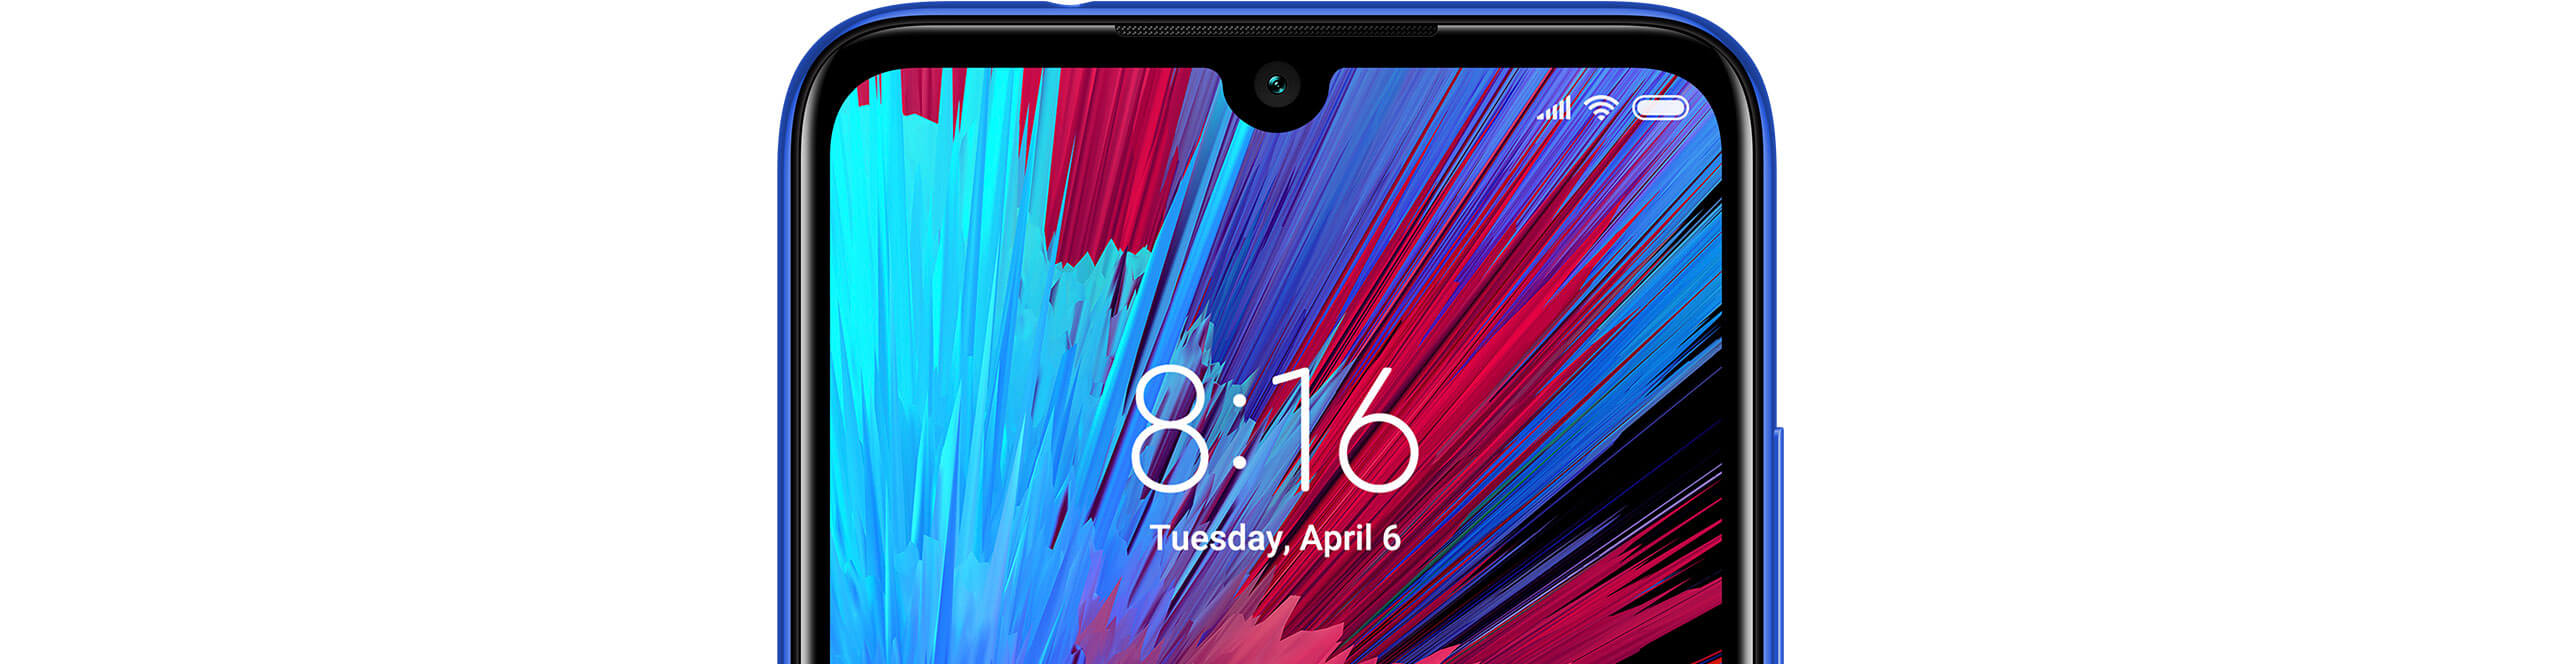 Redmi Note 7 3